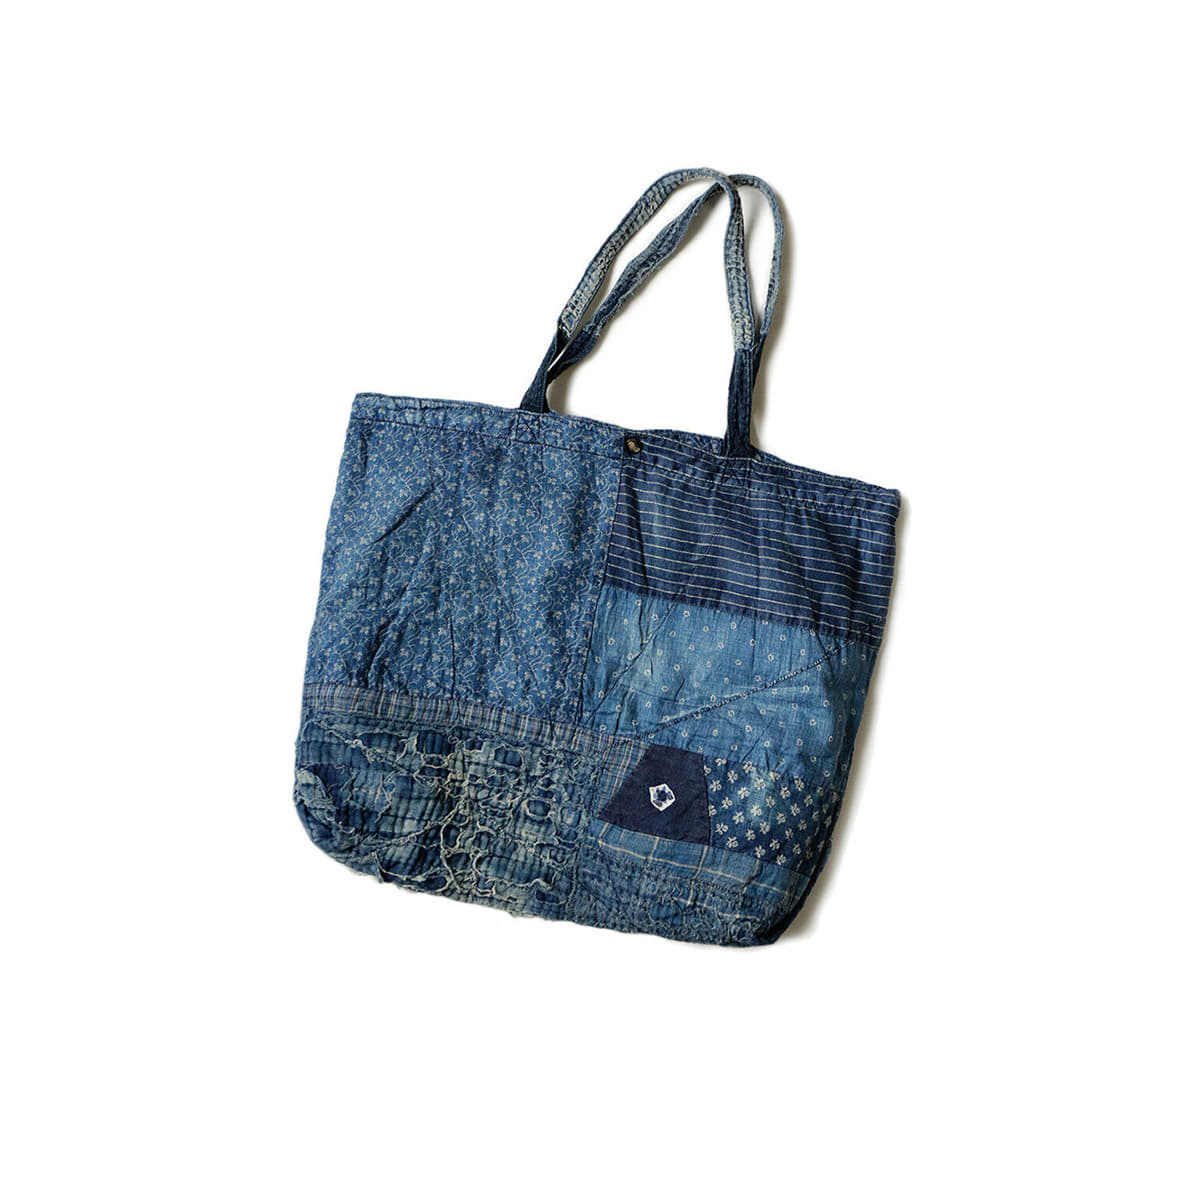 [KAPITAL] DENIM PATCHWORK TOTE BAG LARGE 'INDGO'